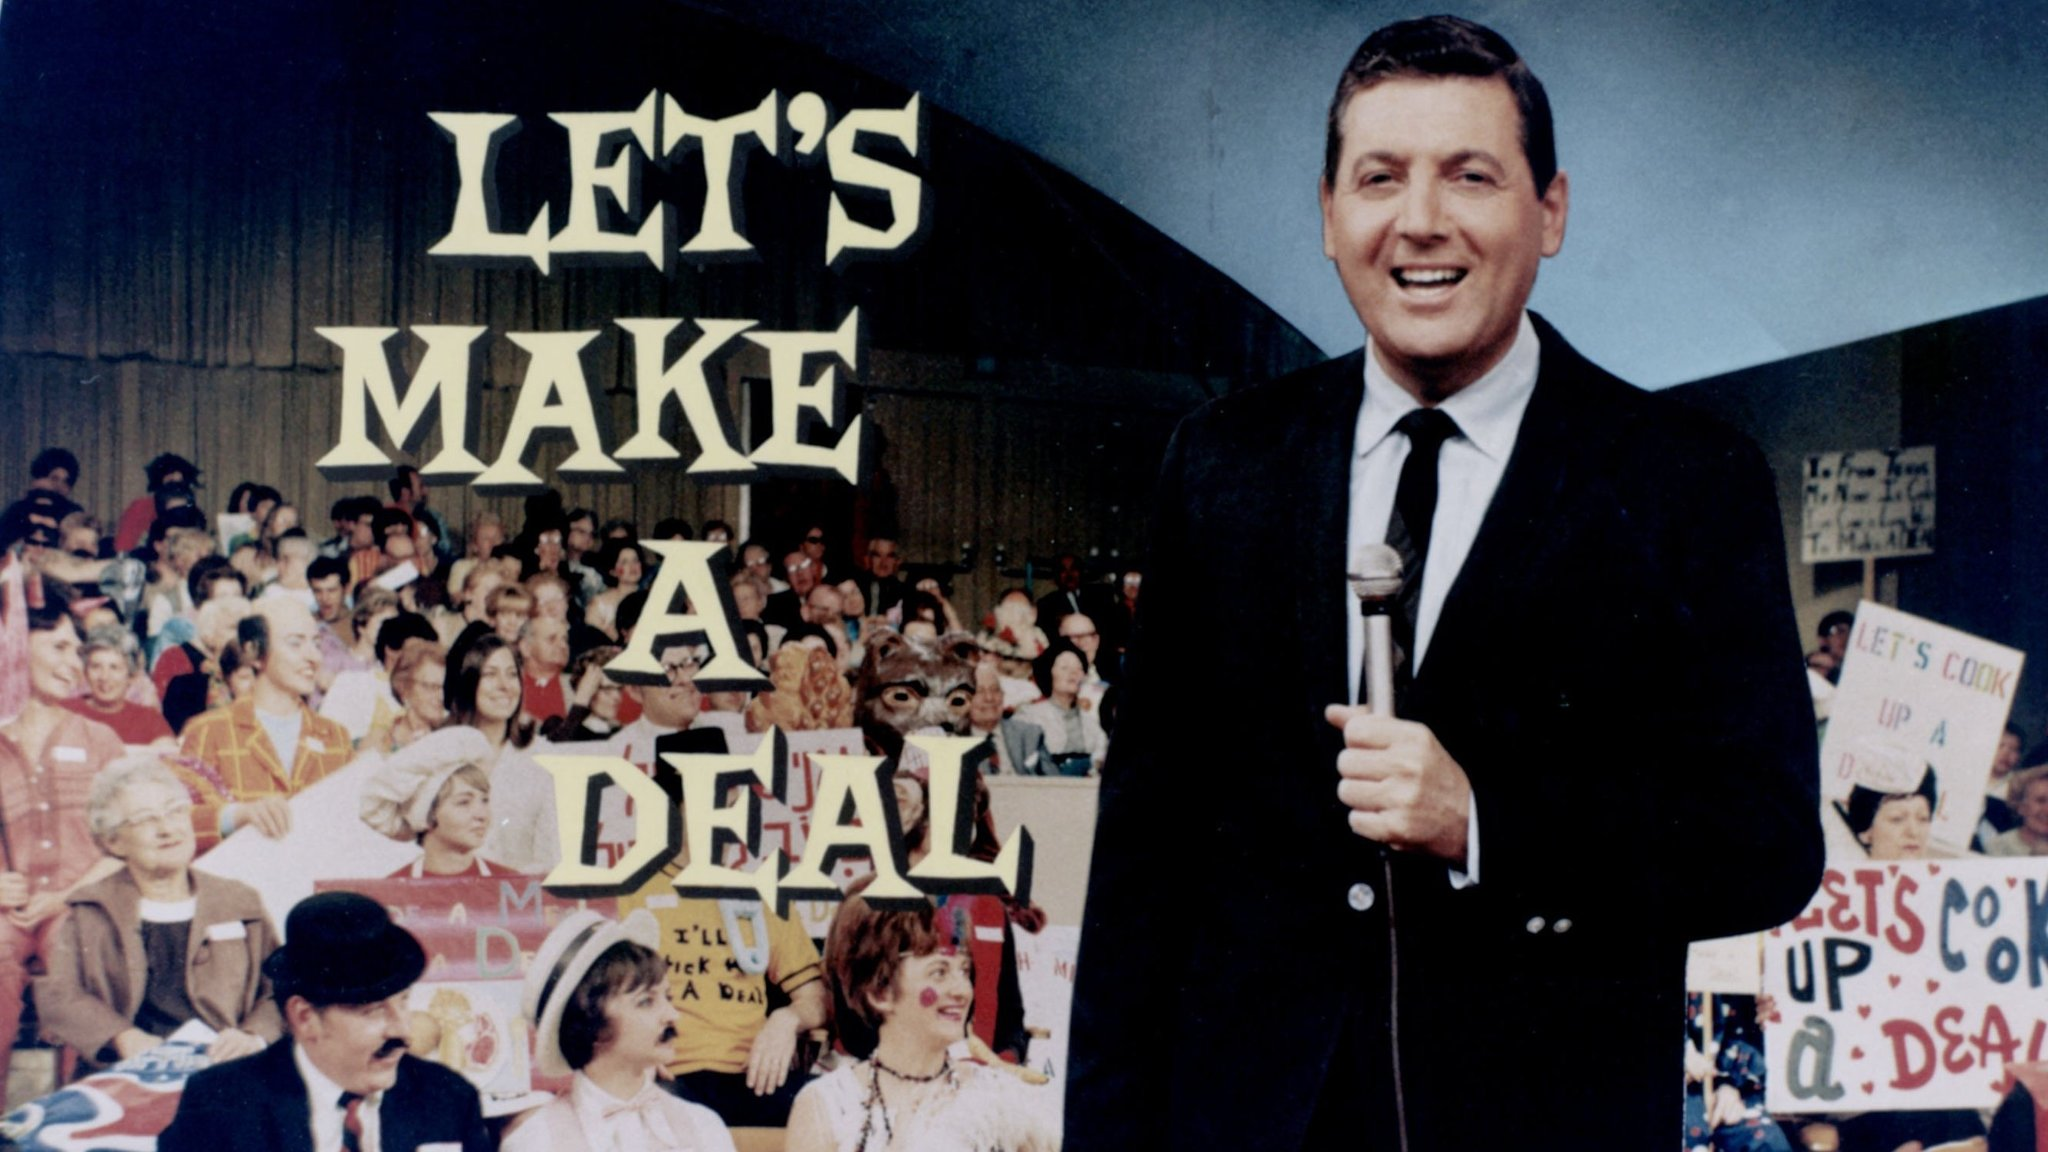 Image result for let's make a deal goat